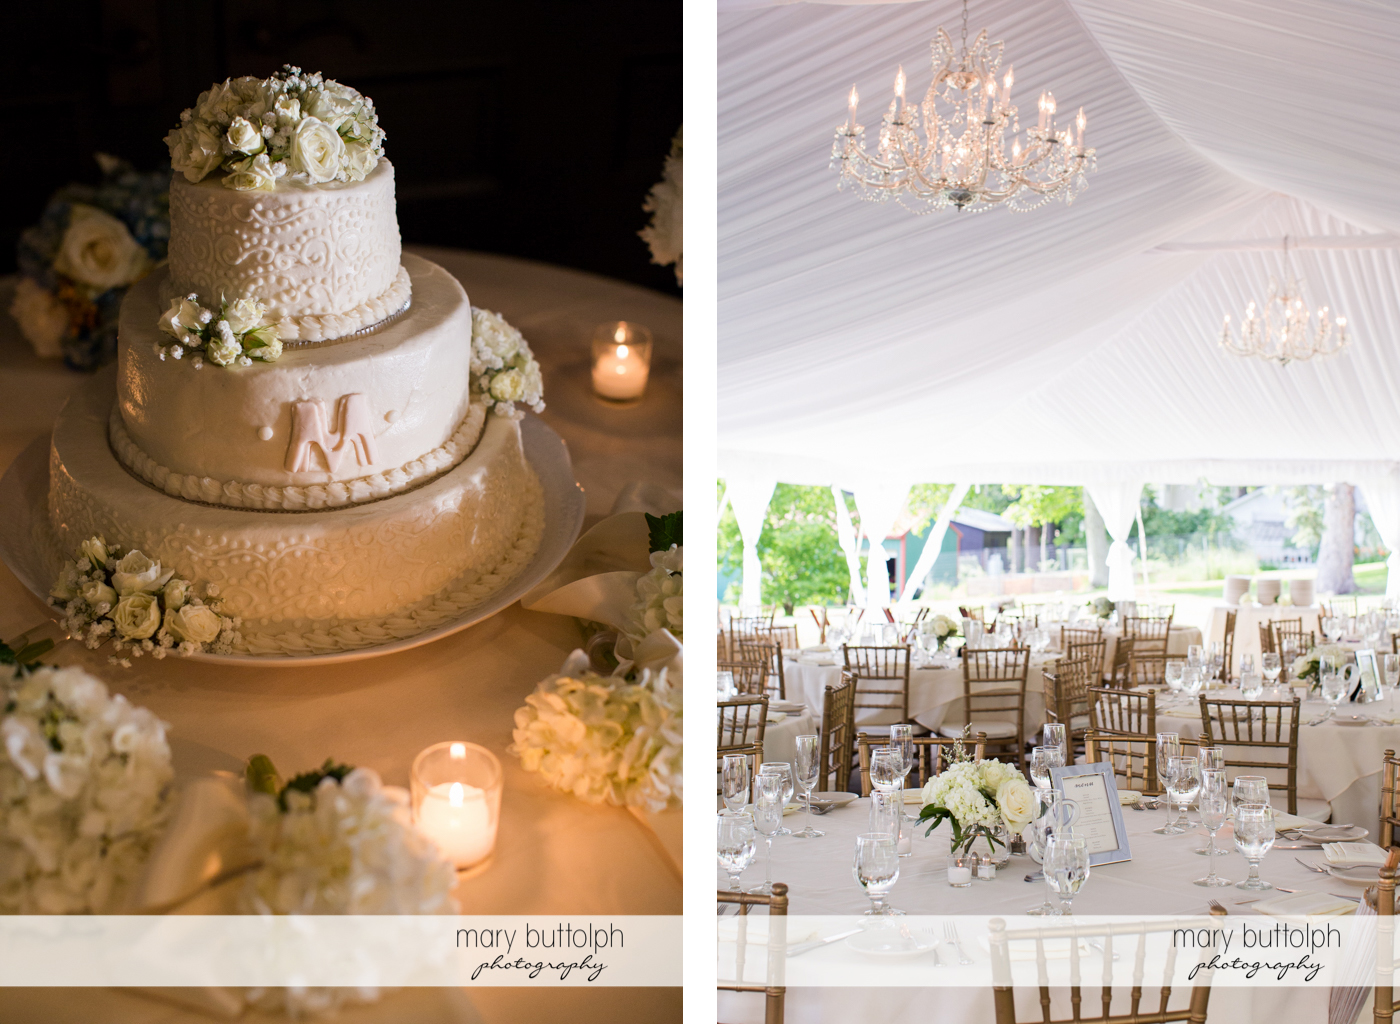 Close up of the couple's cake and wedding venue at the Inns of Aurora Wedding